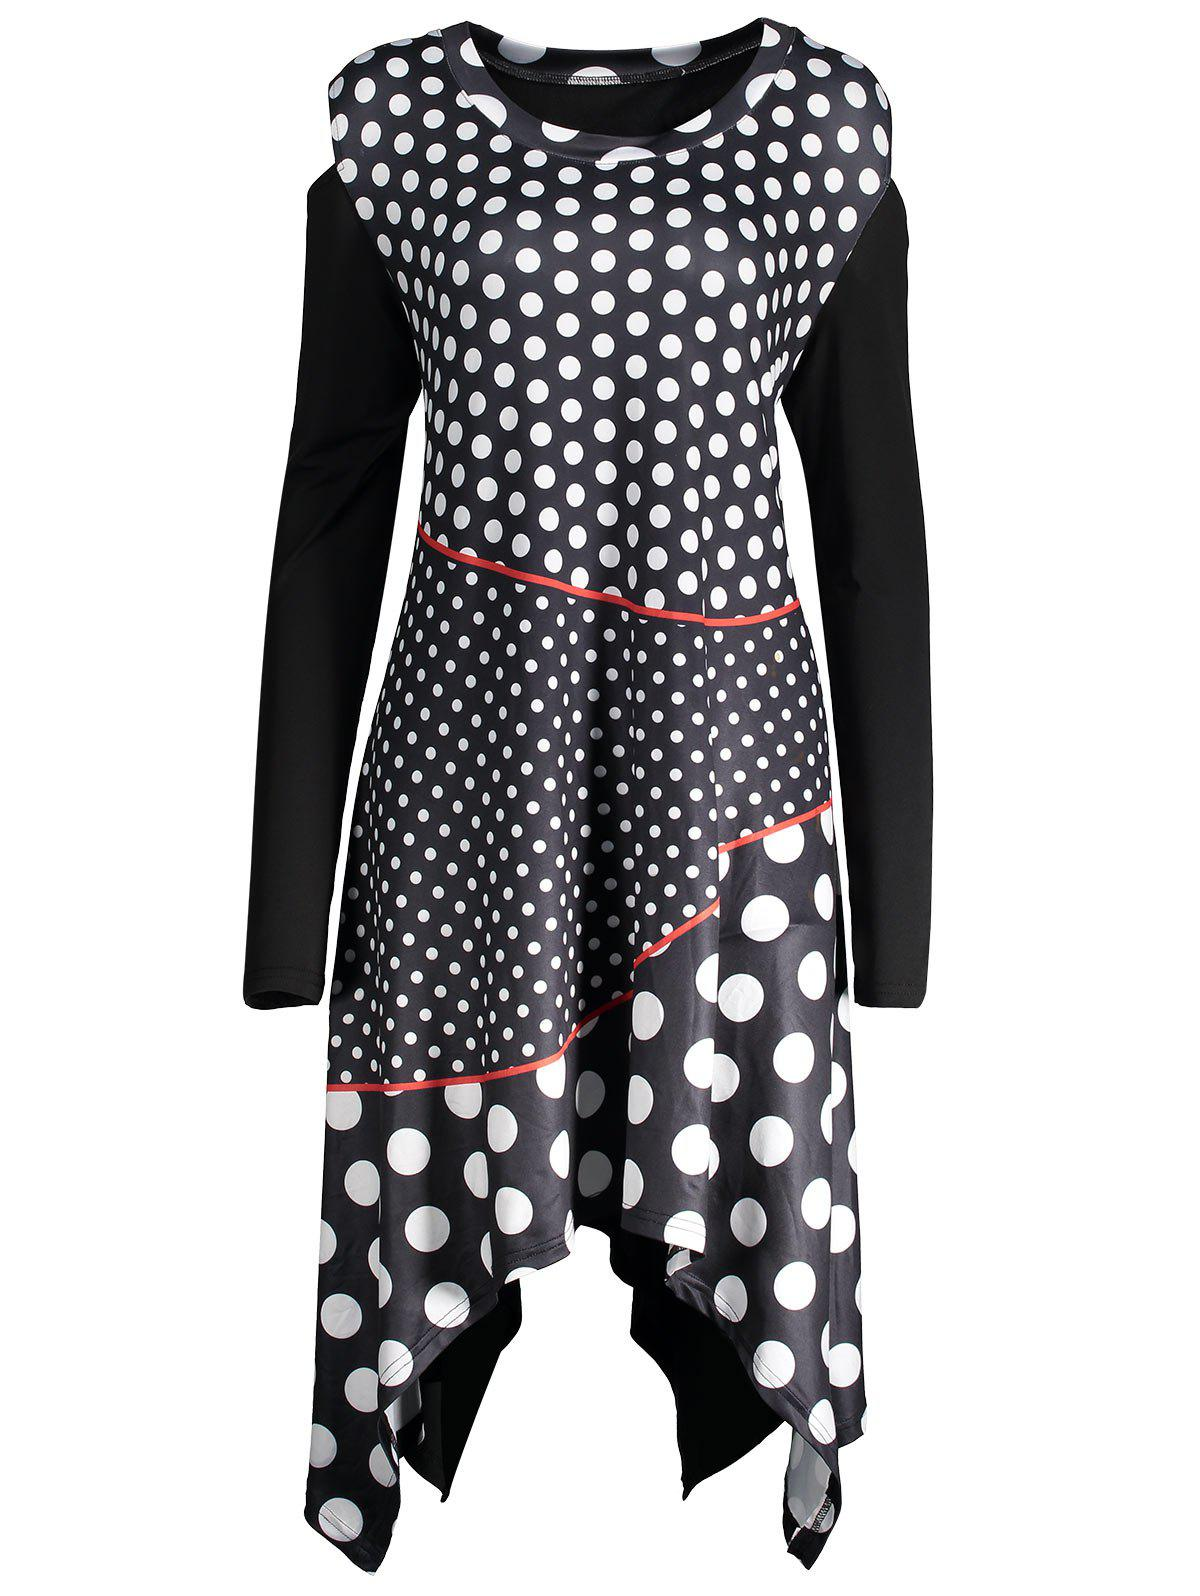 Polka Dot Plus Size Cold Shoulder DressWOMEN<br><br>Size: 5XL; Color: BLACK; Style: Cute; Material: Polyester,Spandex; Silhouette: Asymmetrical; Dresses Length: Knee-Length; Neckline: Round Collar; Sleeve Length: Long Sleeves; Pattern Type: Polka Dot; With Belt: No; Season: Fall,Spring; Weight: 0.4200kg; Package Contents: 1 x Dress;